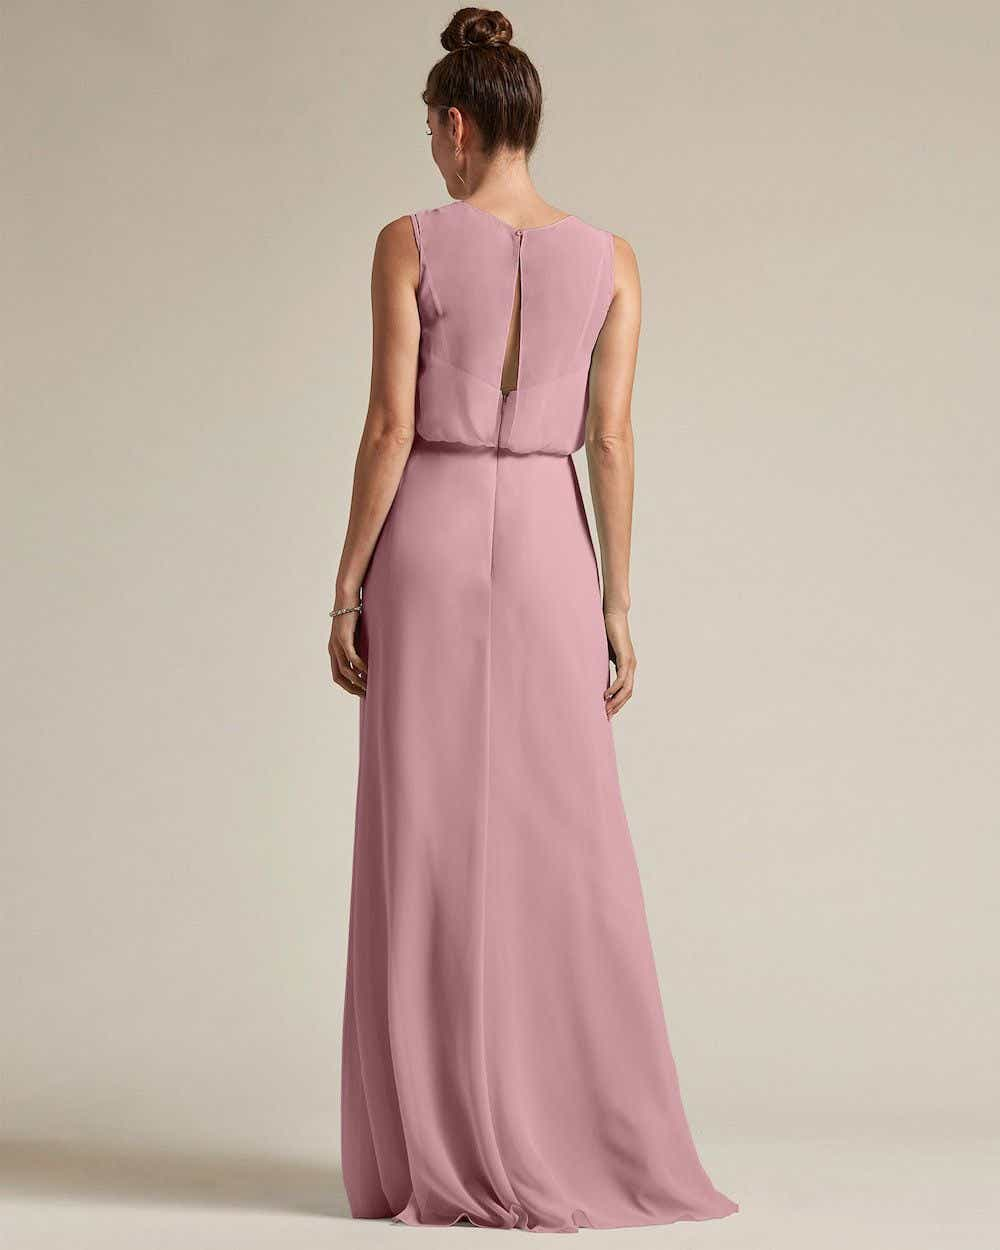 Illusion Style Boat Neck Two Piece Maxi Dress - Back